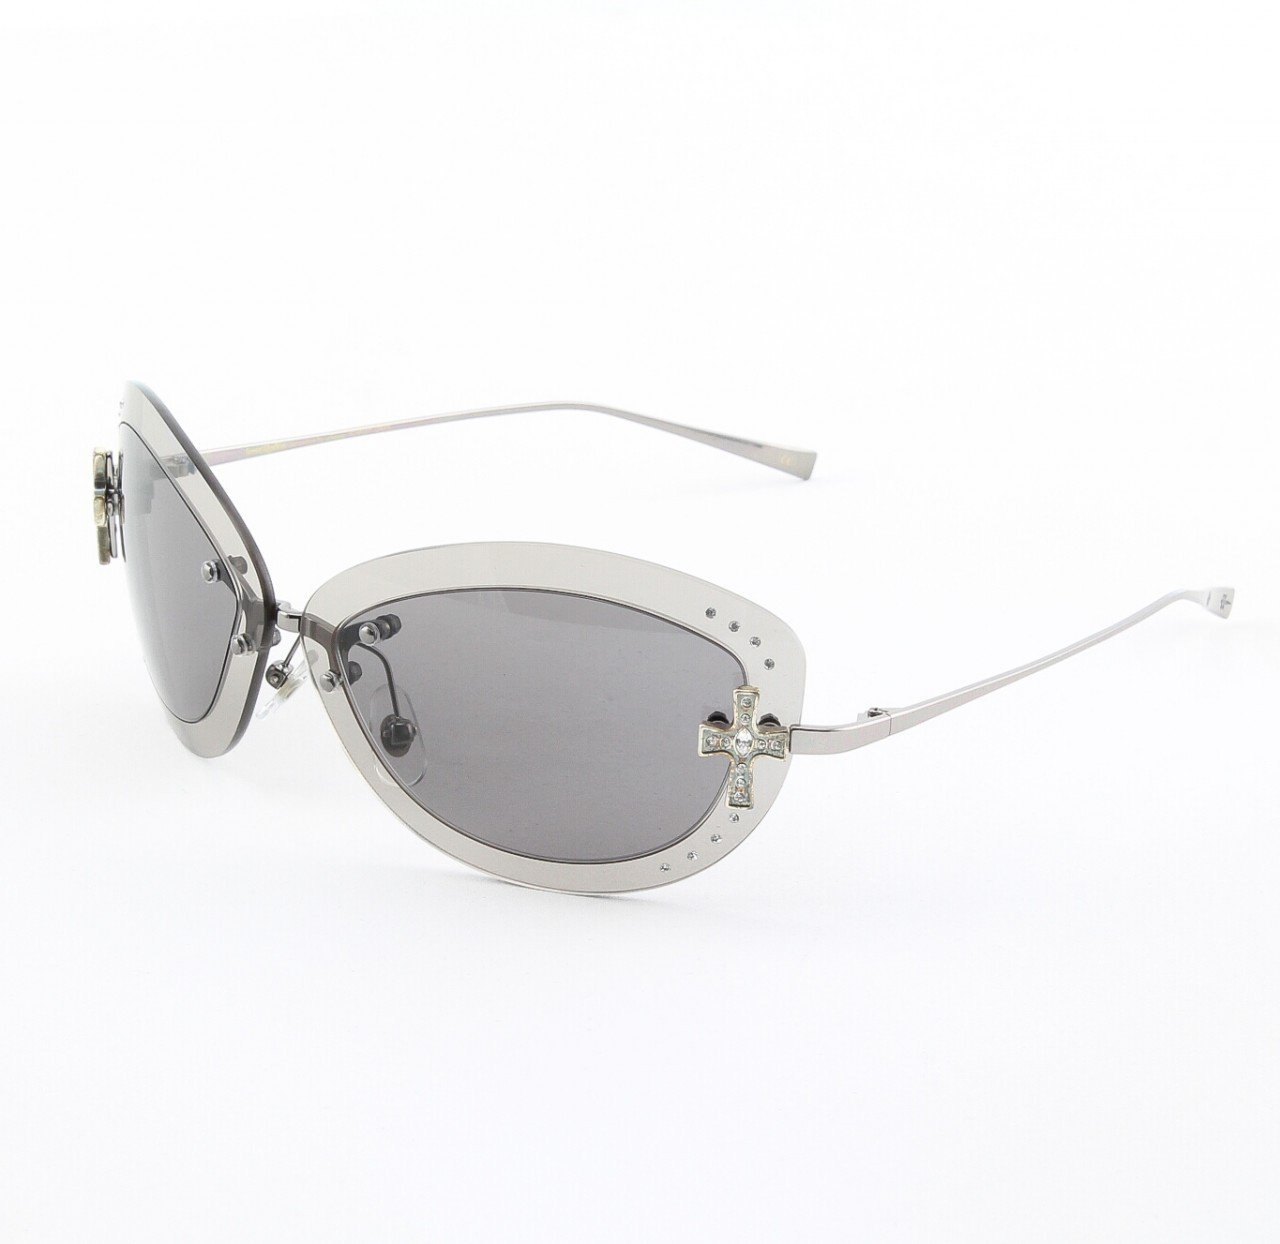 Loree Rodkin Scarlet Sunglasses by Sama Col. Onyx with Gray Lenses and Swarovski Crystals